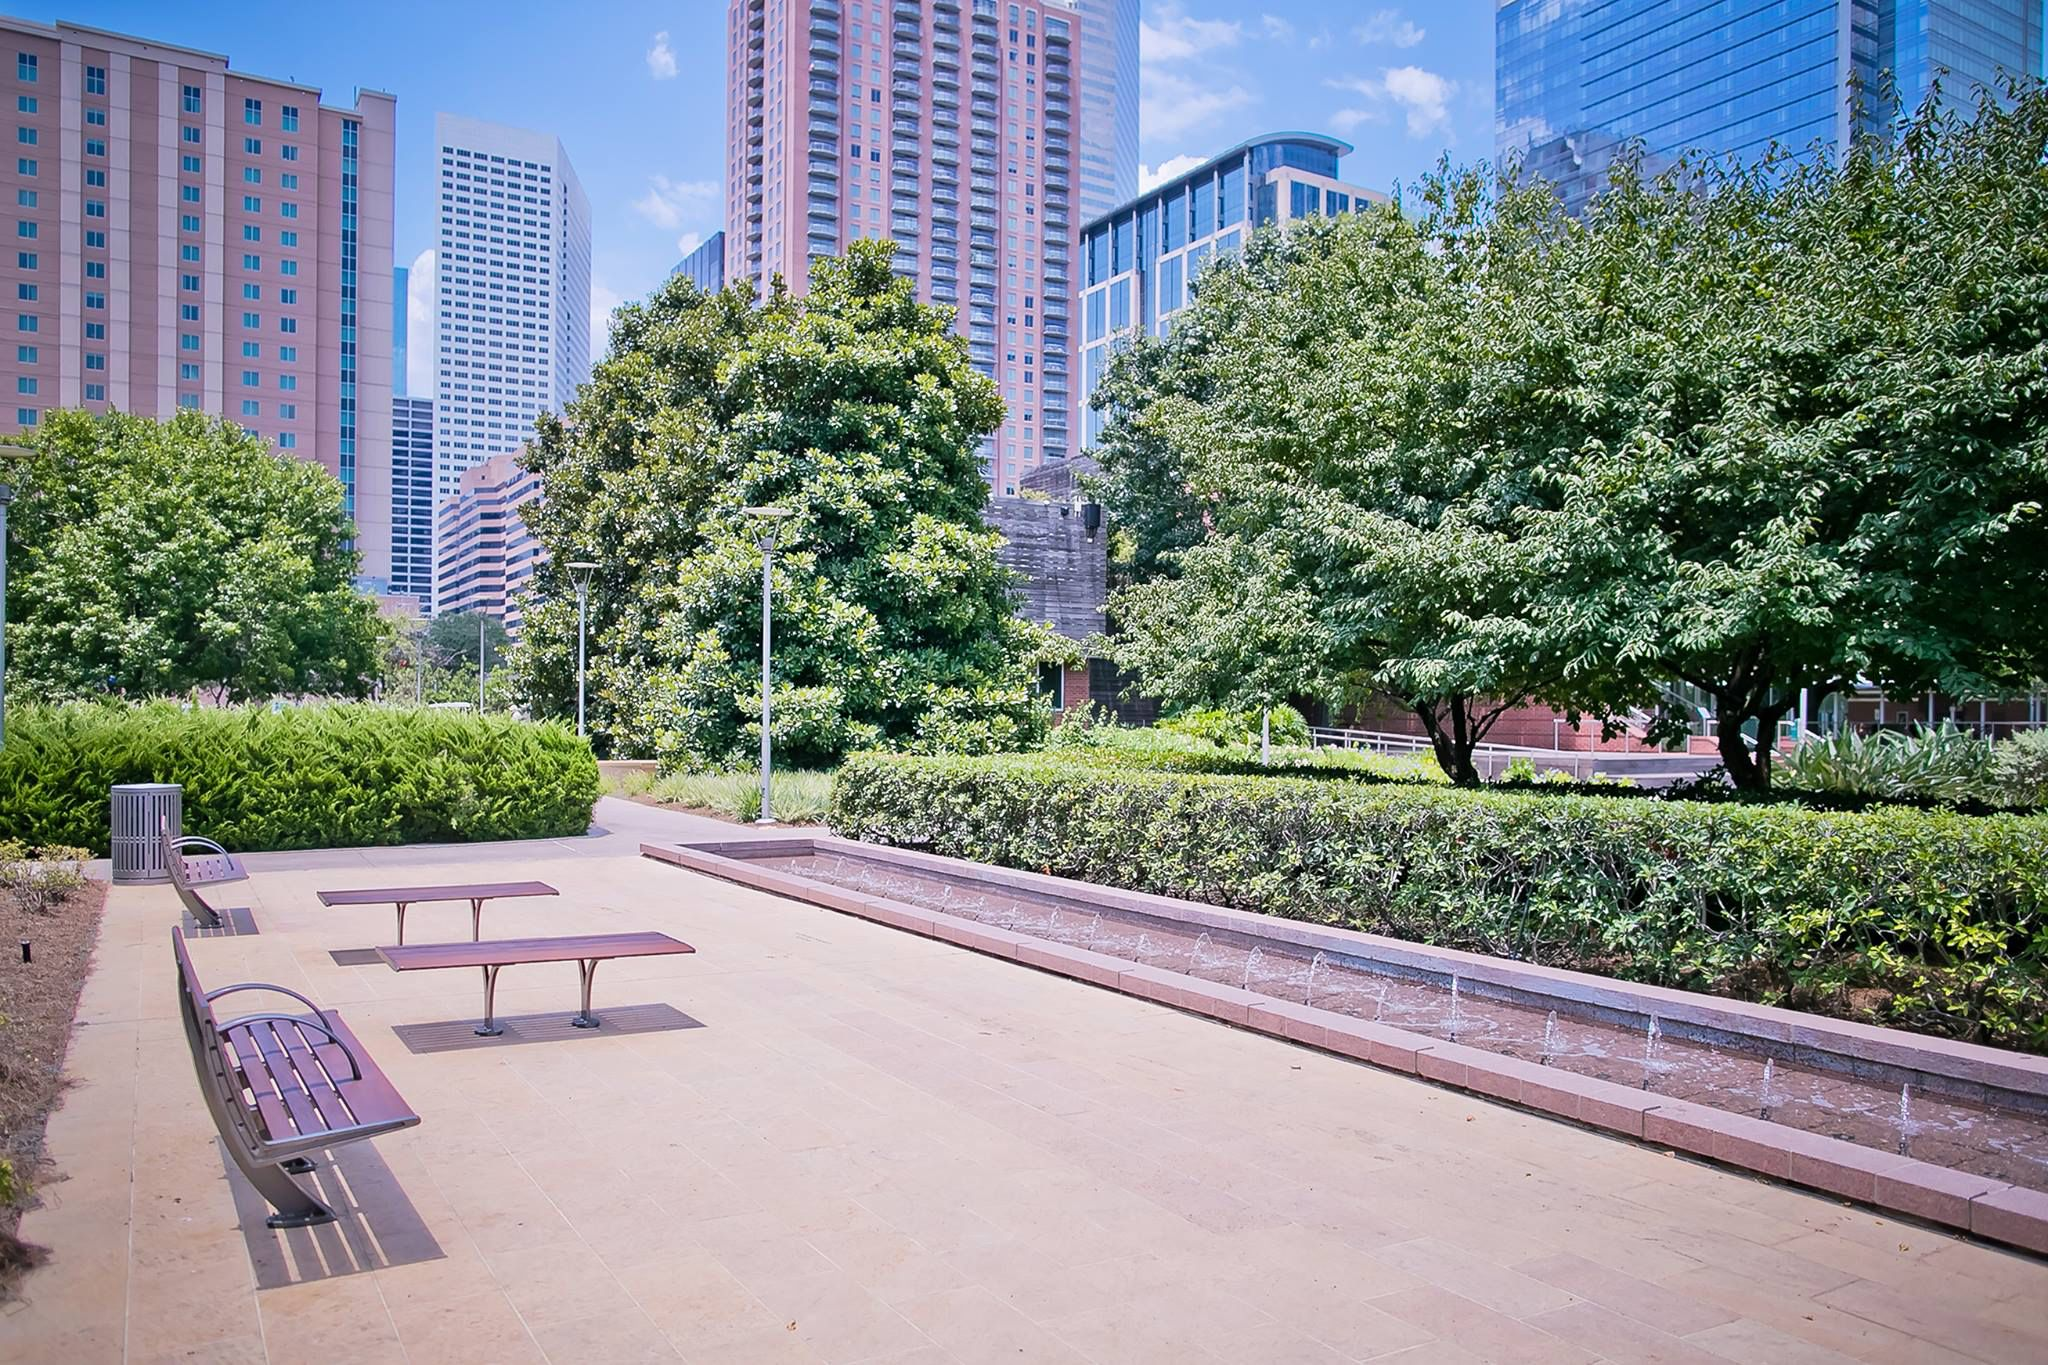 benches in Discovery Green park